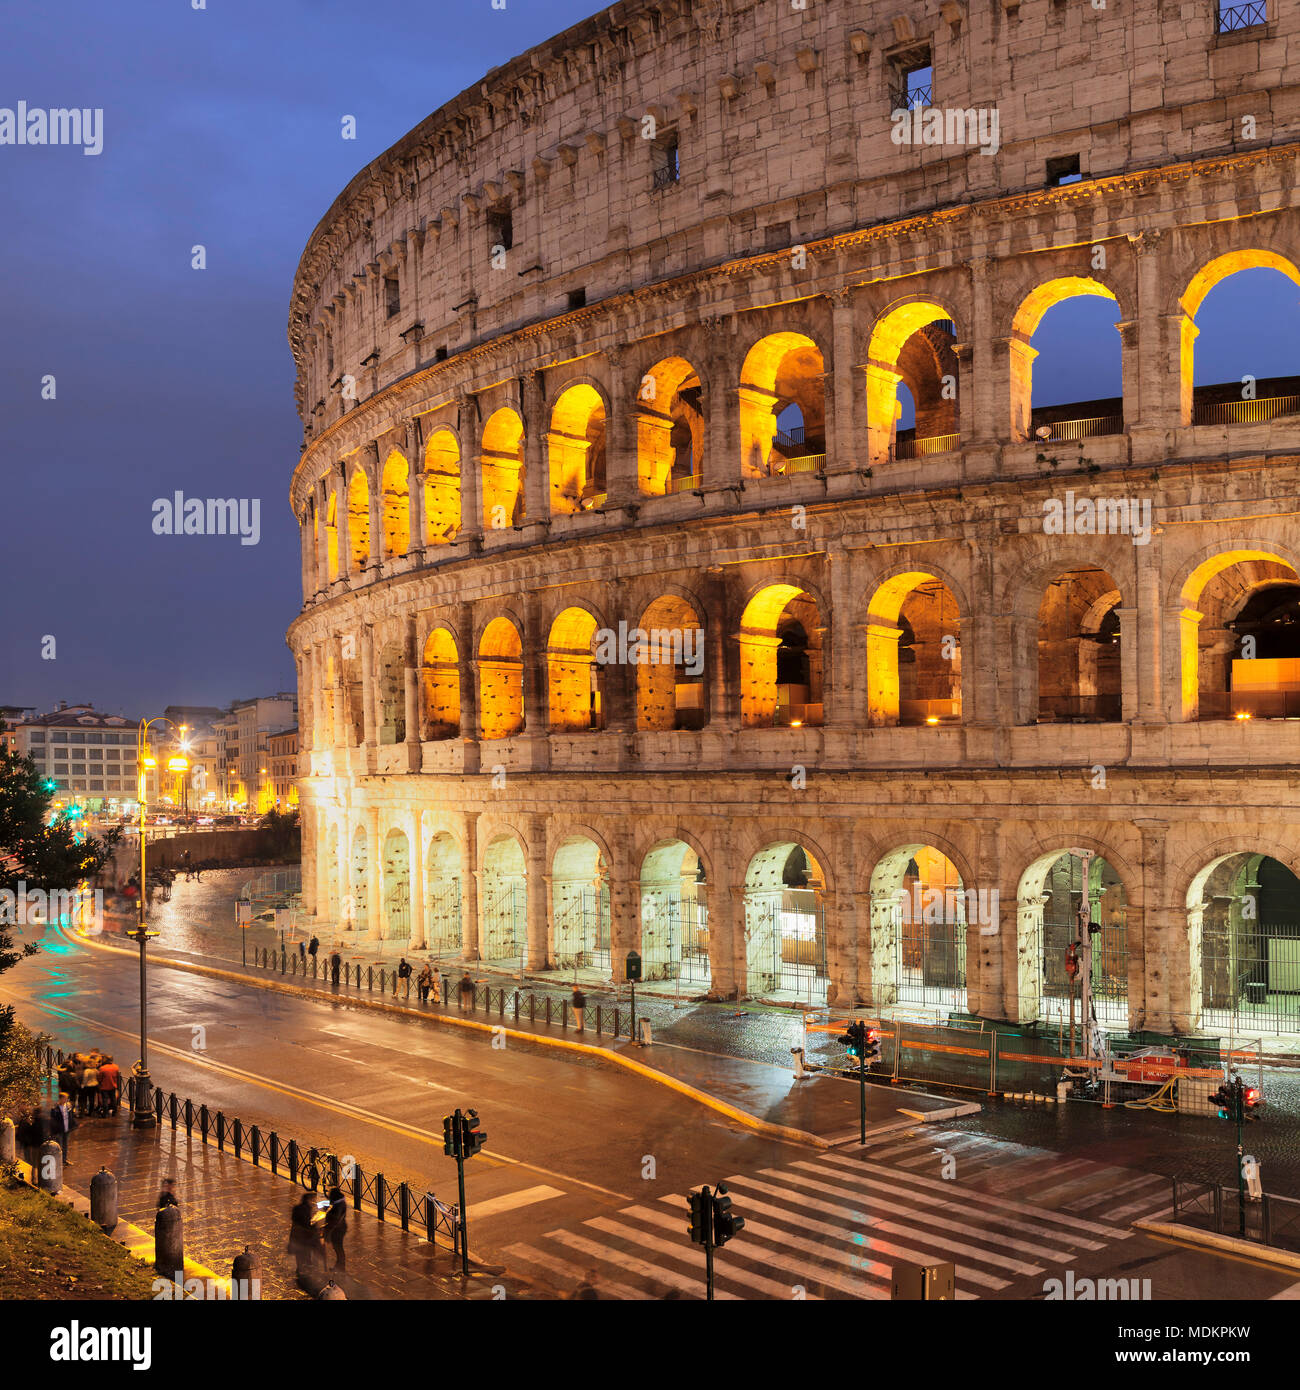 Illuminated Colosseum, Colosseo, UNESCO World Heritage, Rome, Lazio, Italy - Stock Image